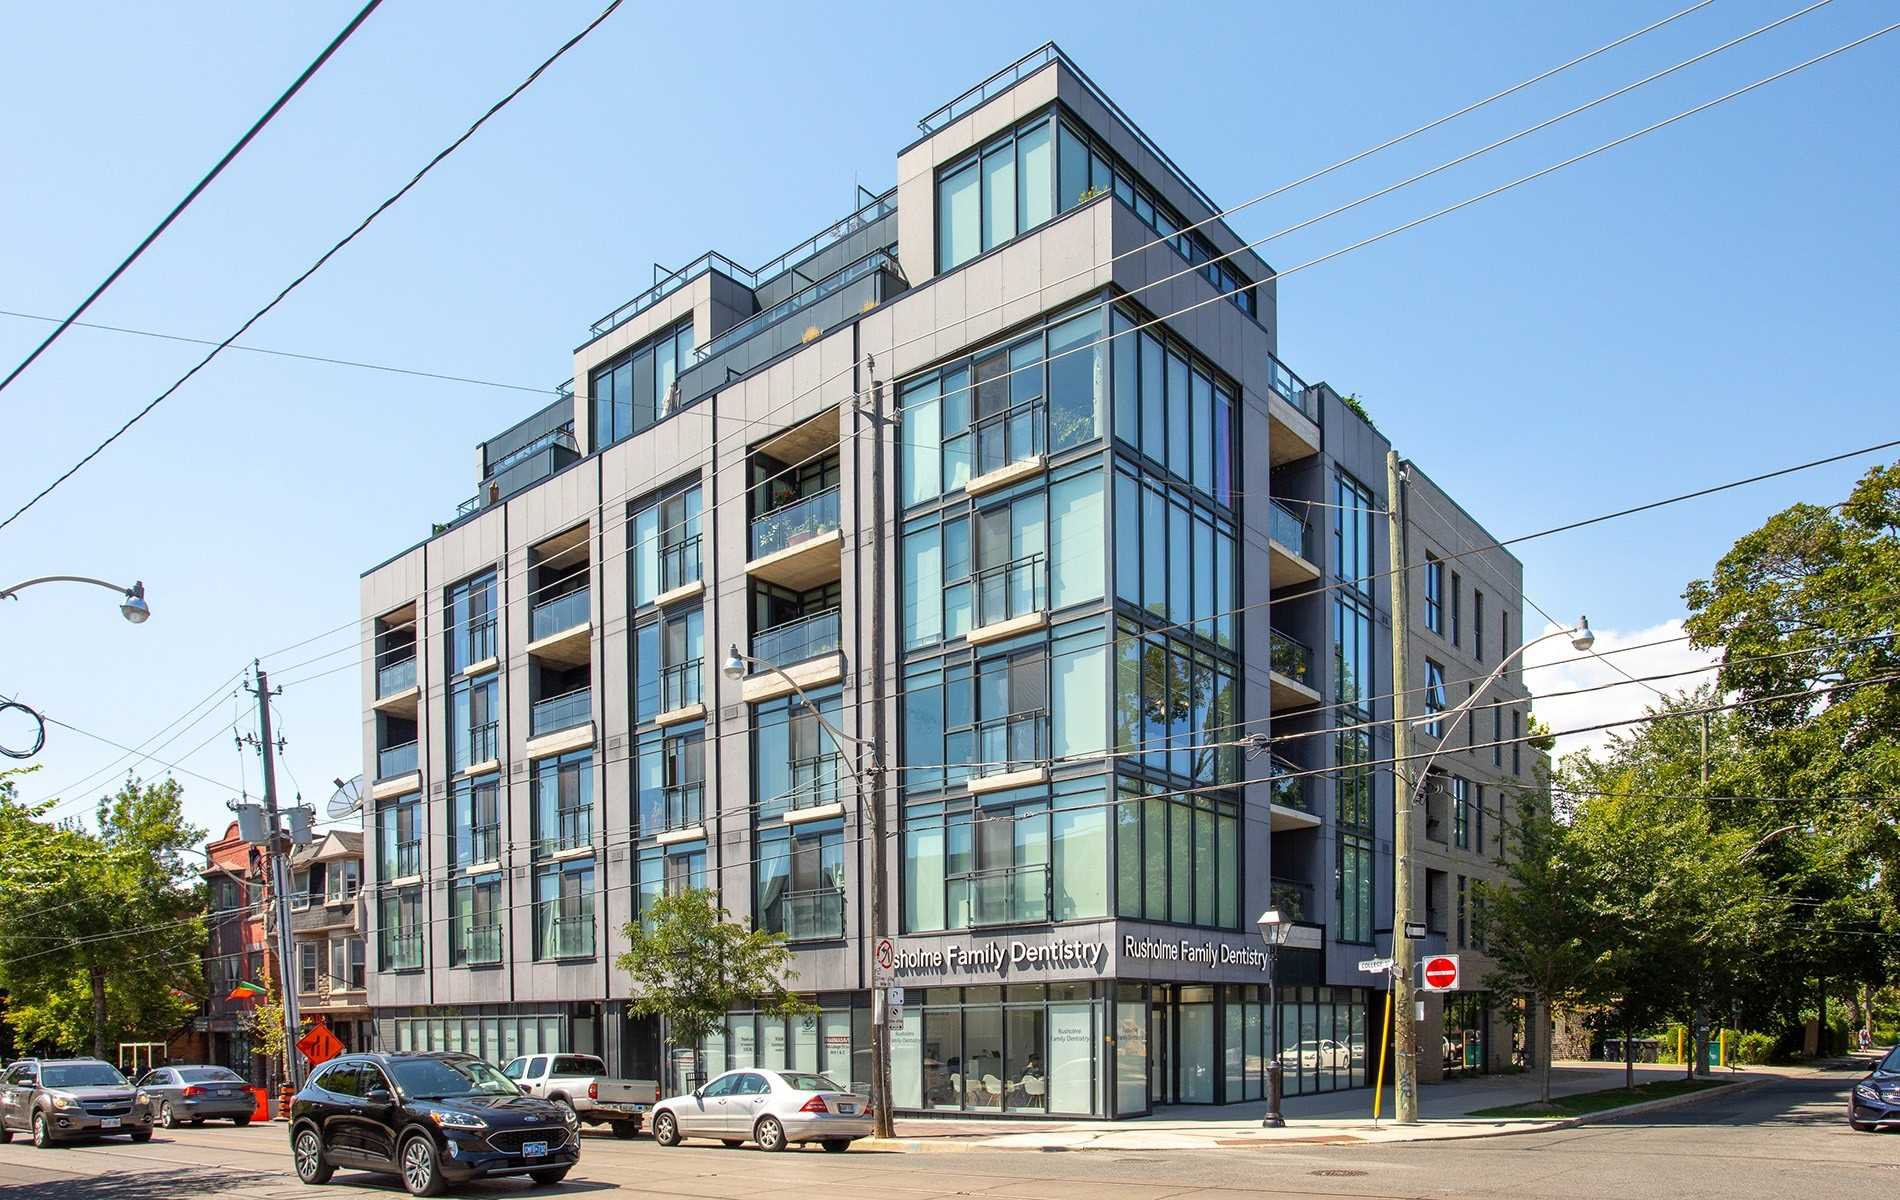 Main Photo: 303 130 Rusholme Road in Toronto: Dufferin Grove Condo for sale (Toronto C01)  : MLS®# C4865267